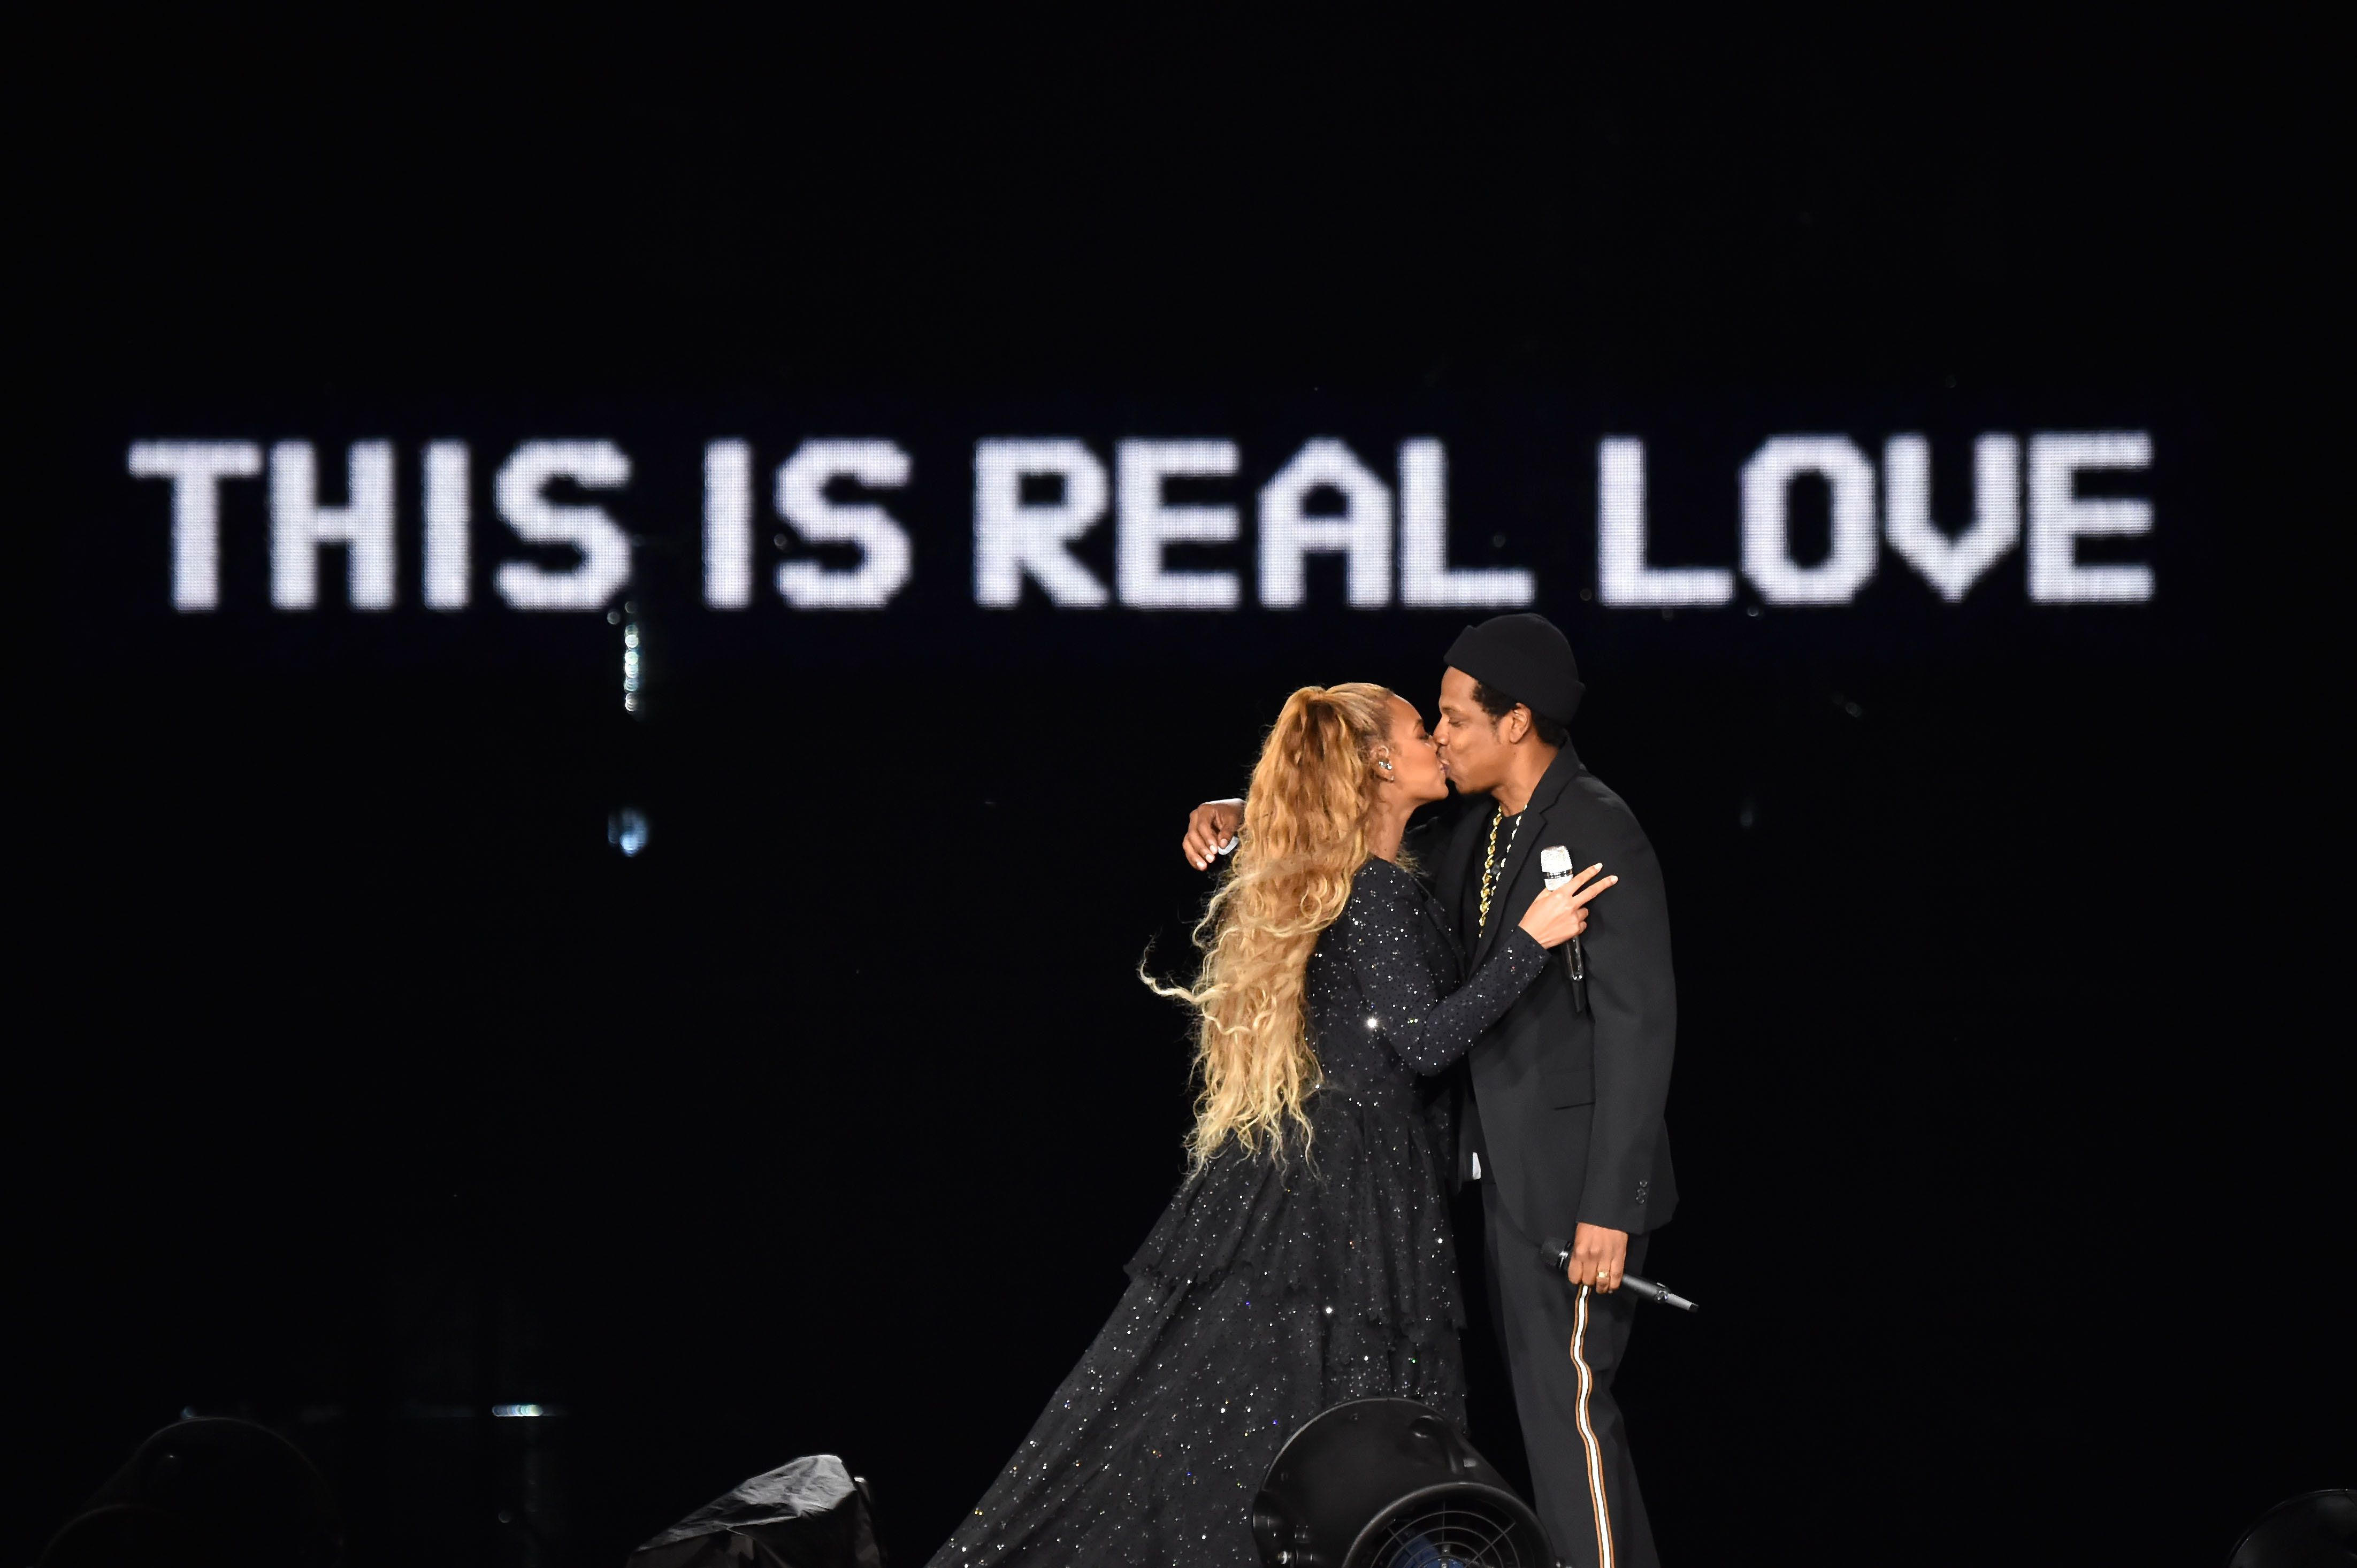 GLASGOW, SCOTLAND - JUNE 09:  Beyonce and Jay-Z kiss ending their performance on stage during the 'On the Run II' Tour at Hampden Park on June 9, 2018 in Glasgow, Scotland.  (Photo by Kevin Mazur/Getty Images For Parkwood Entertainment)